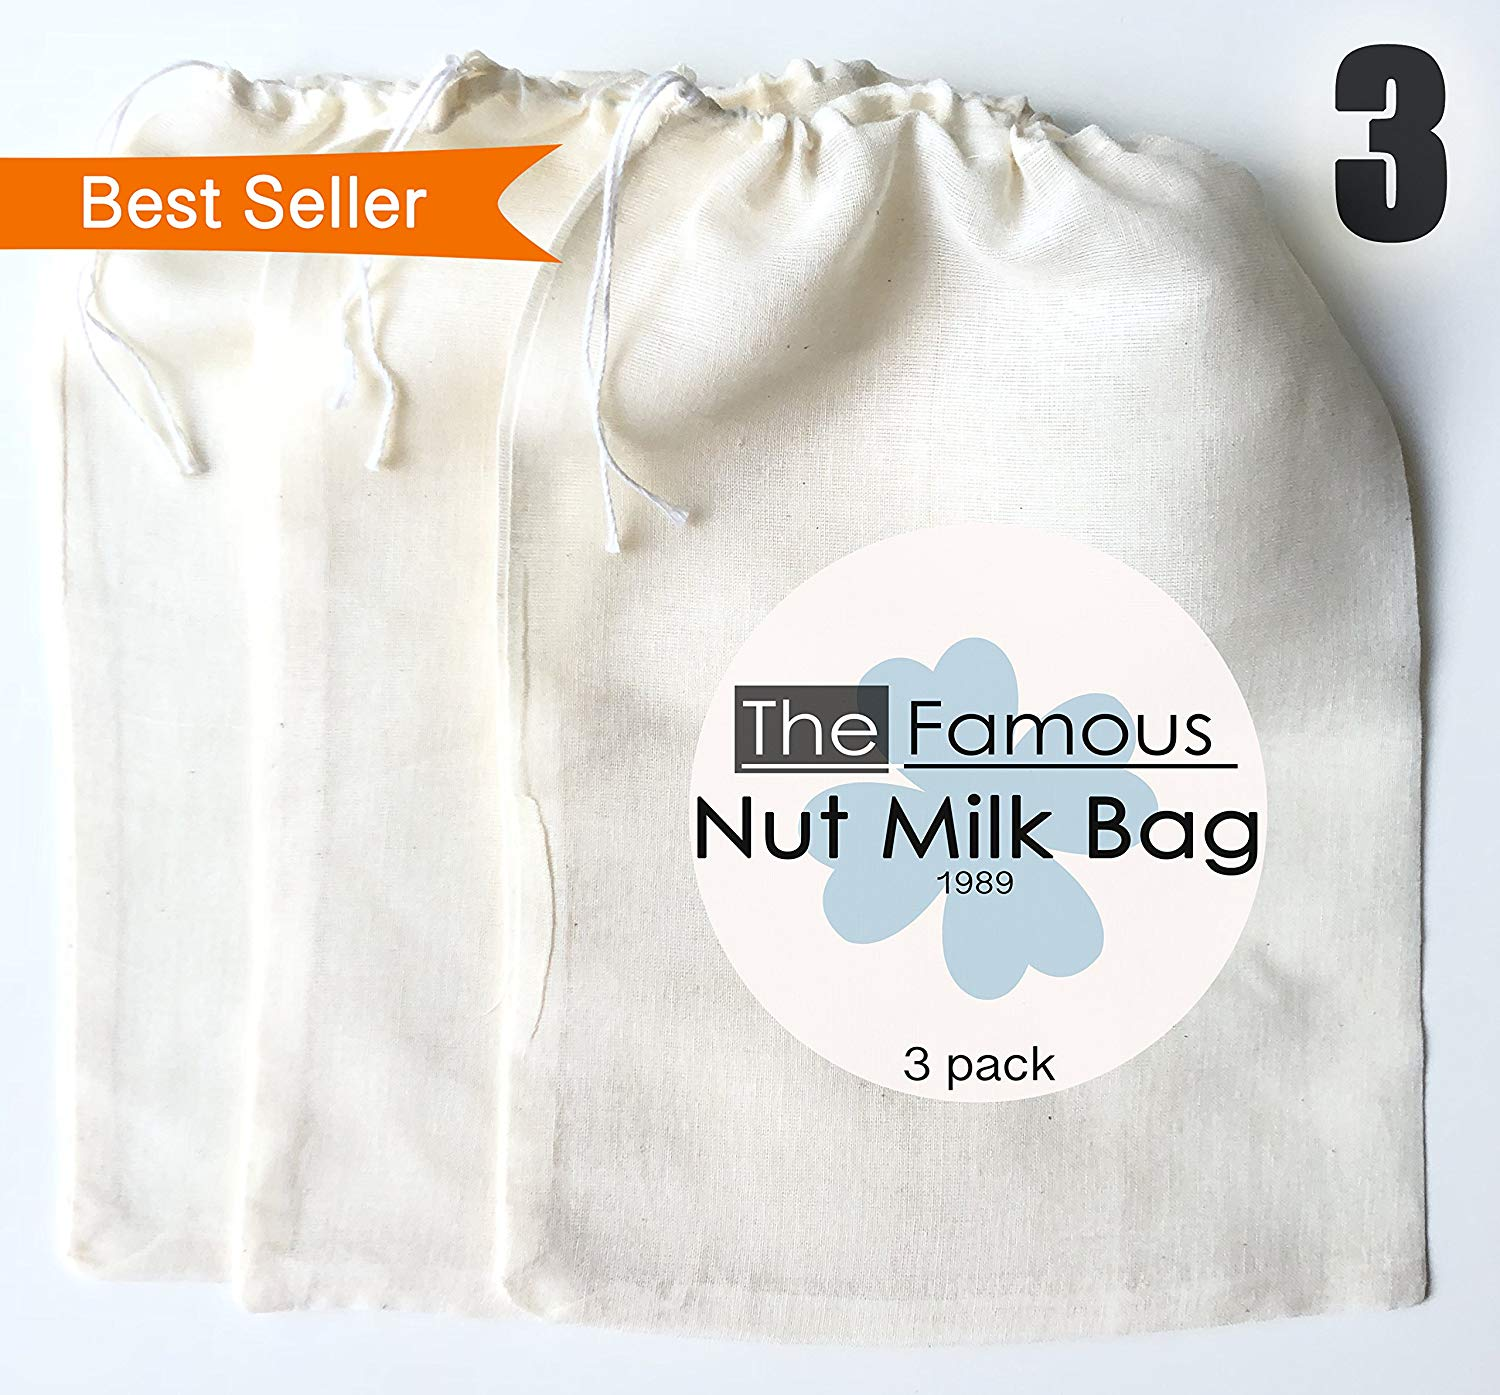 Fruit 6 Pack Nut Milk Bag 10 x 12 inch Tea Coconut Beer Greek Yogurt Replacement Reusable Strainer Cheesecloth Filter for Almond Nylon Mesh Cheesecloth Veg Soy Milk